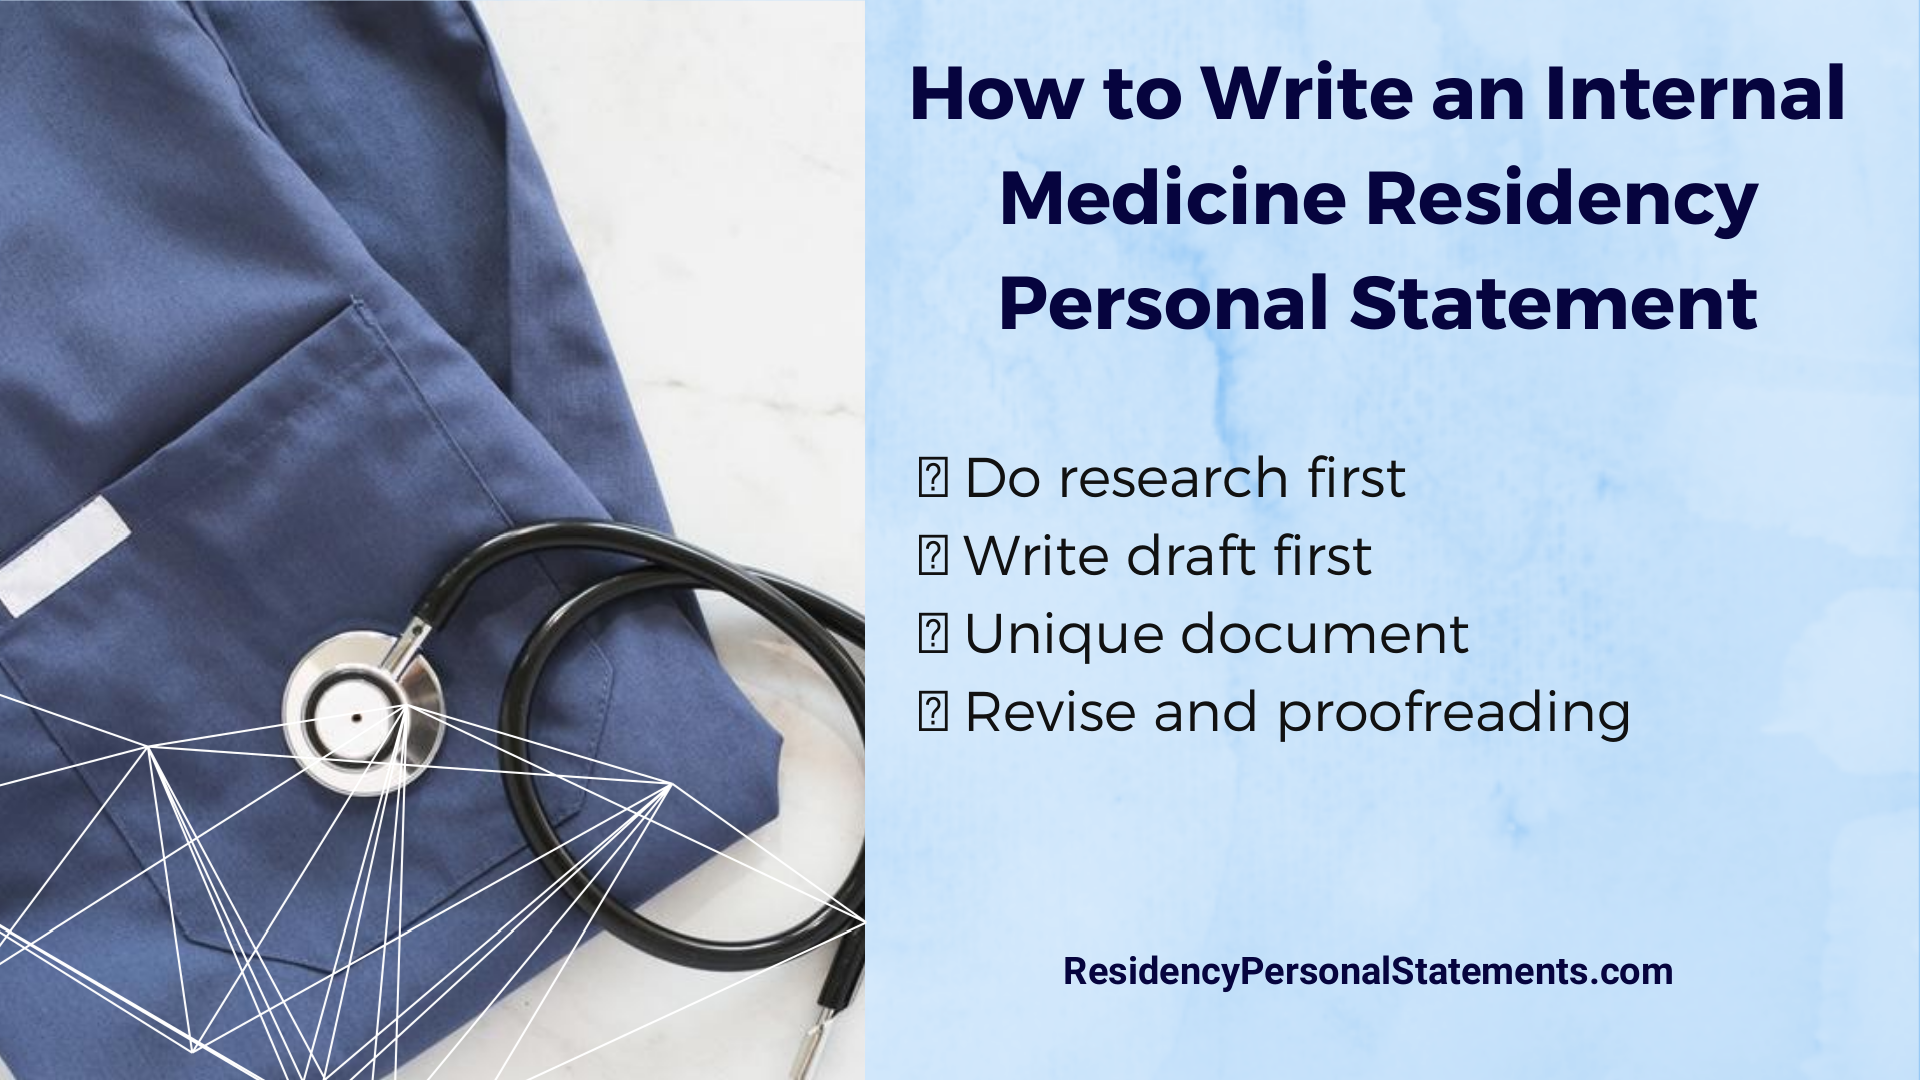 Internal Medicine Residency Personal Statement Writing